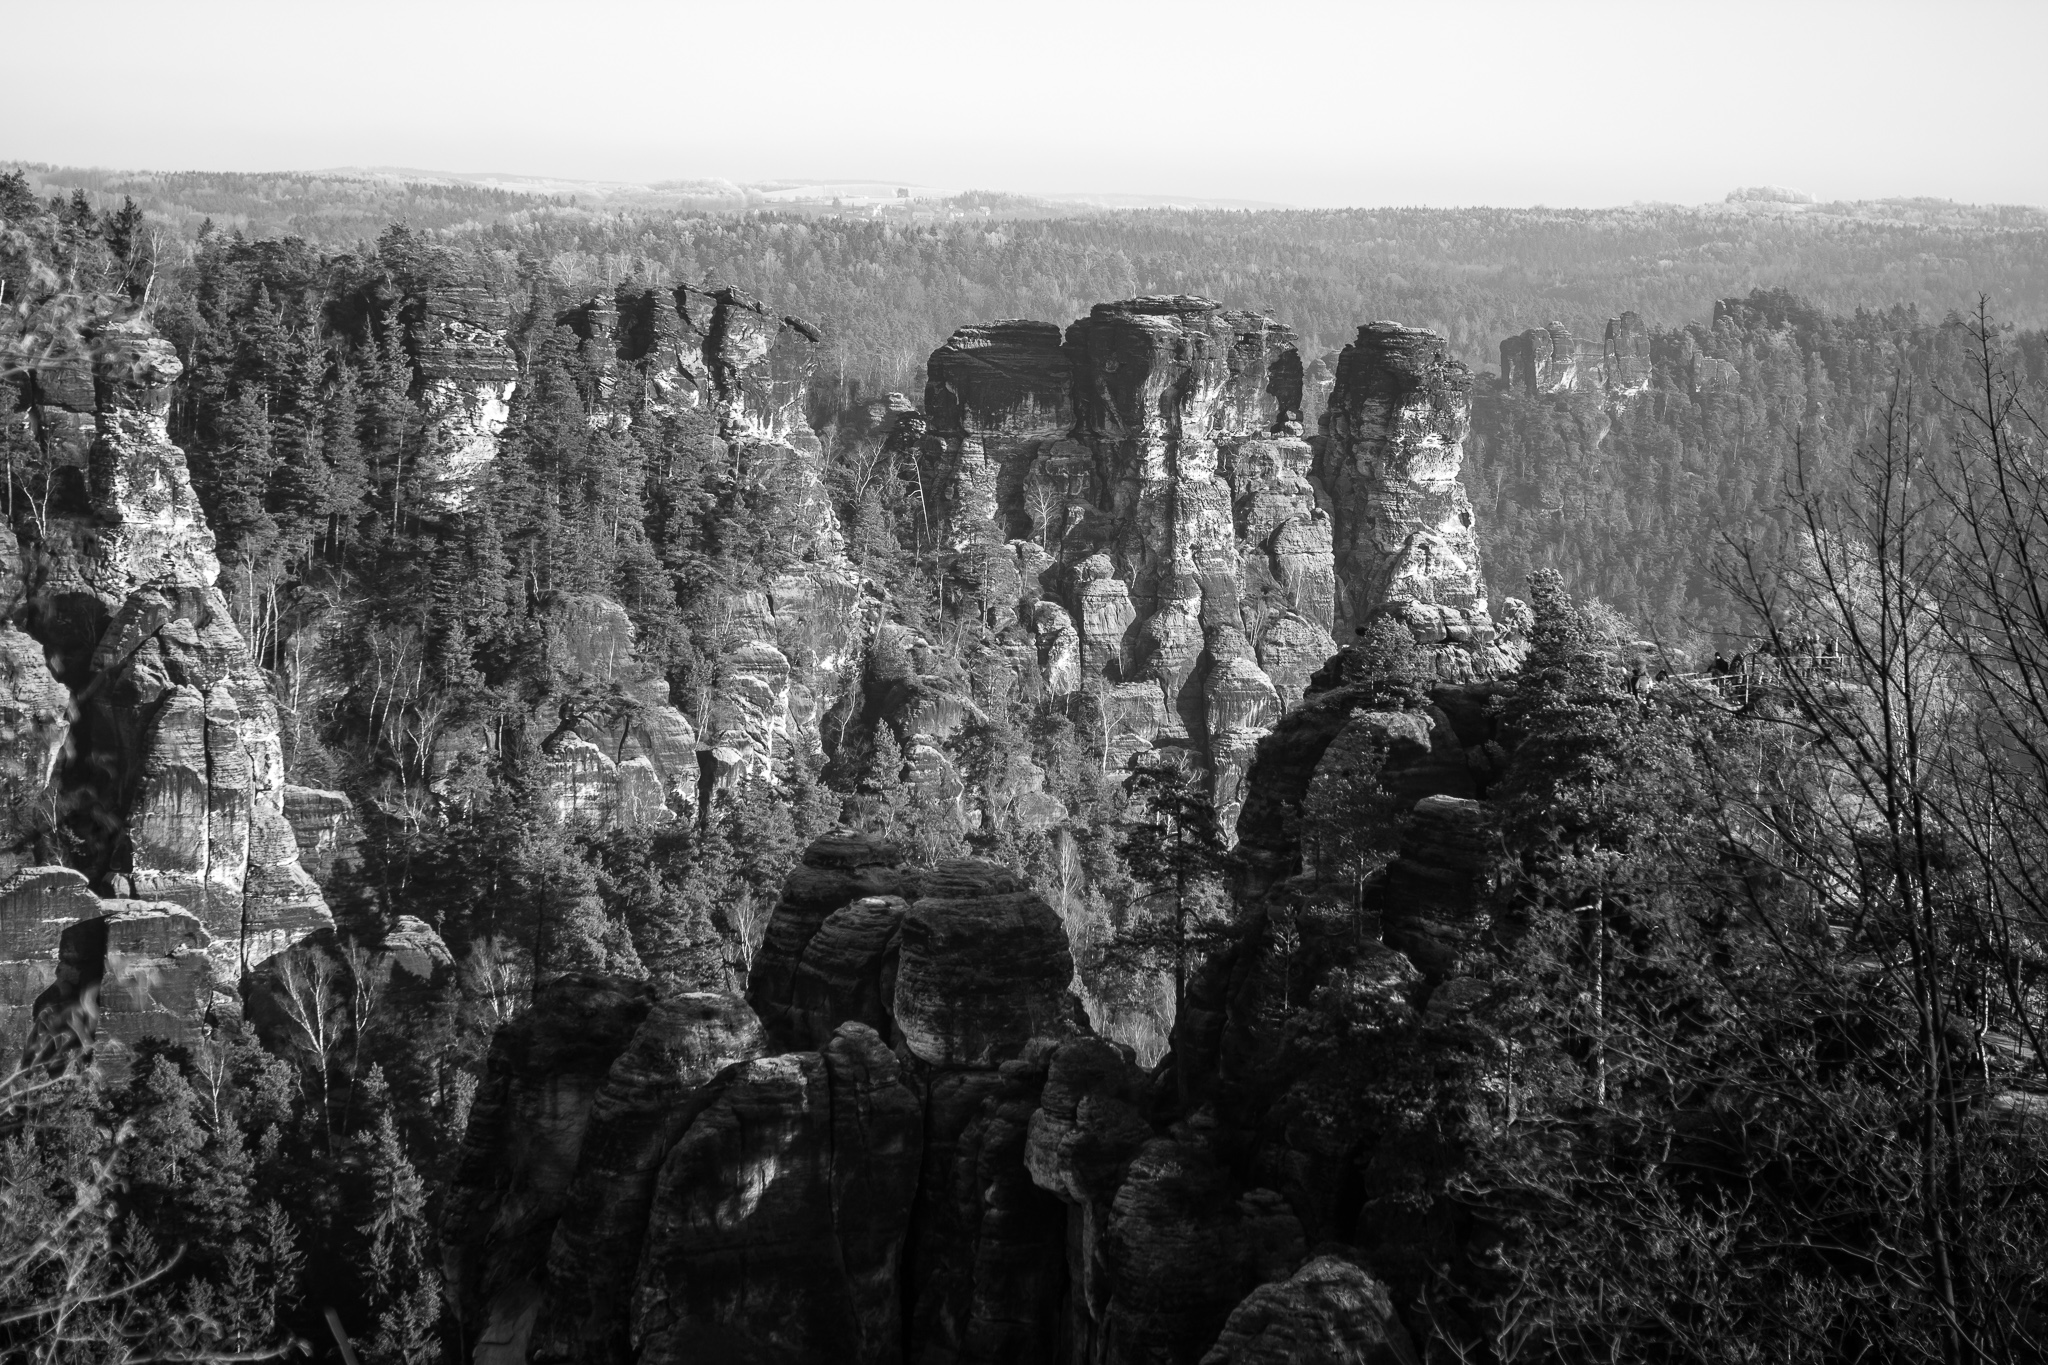 The National Park of Saxon Switzerland is located in Southeastern Germany and south of the city of Dresden. <br> The park, center of a natural space of almost 710 km², extends along the river Elbe. <br> Its characteristic sandstone mountains make up a rocky chain that rises 194 meters above the level of the river.